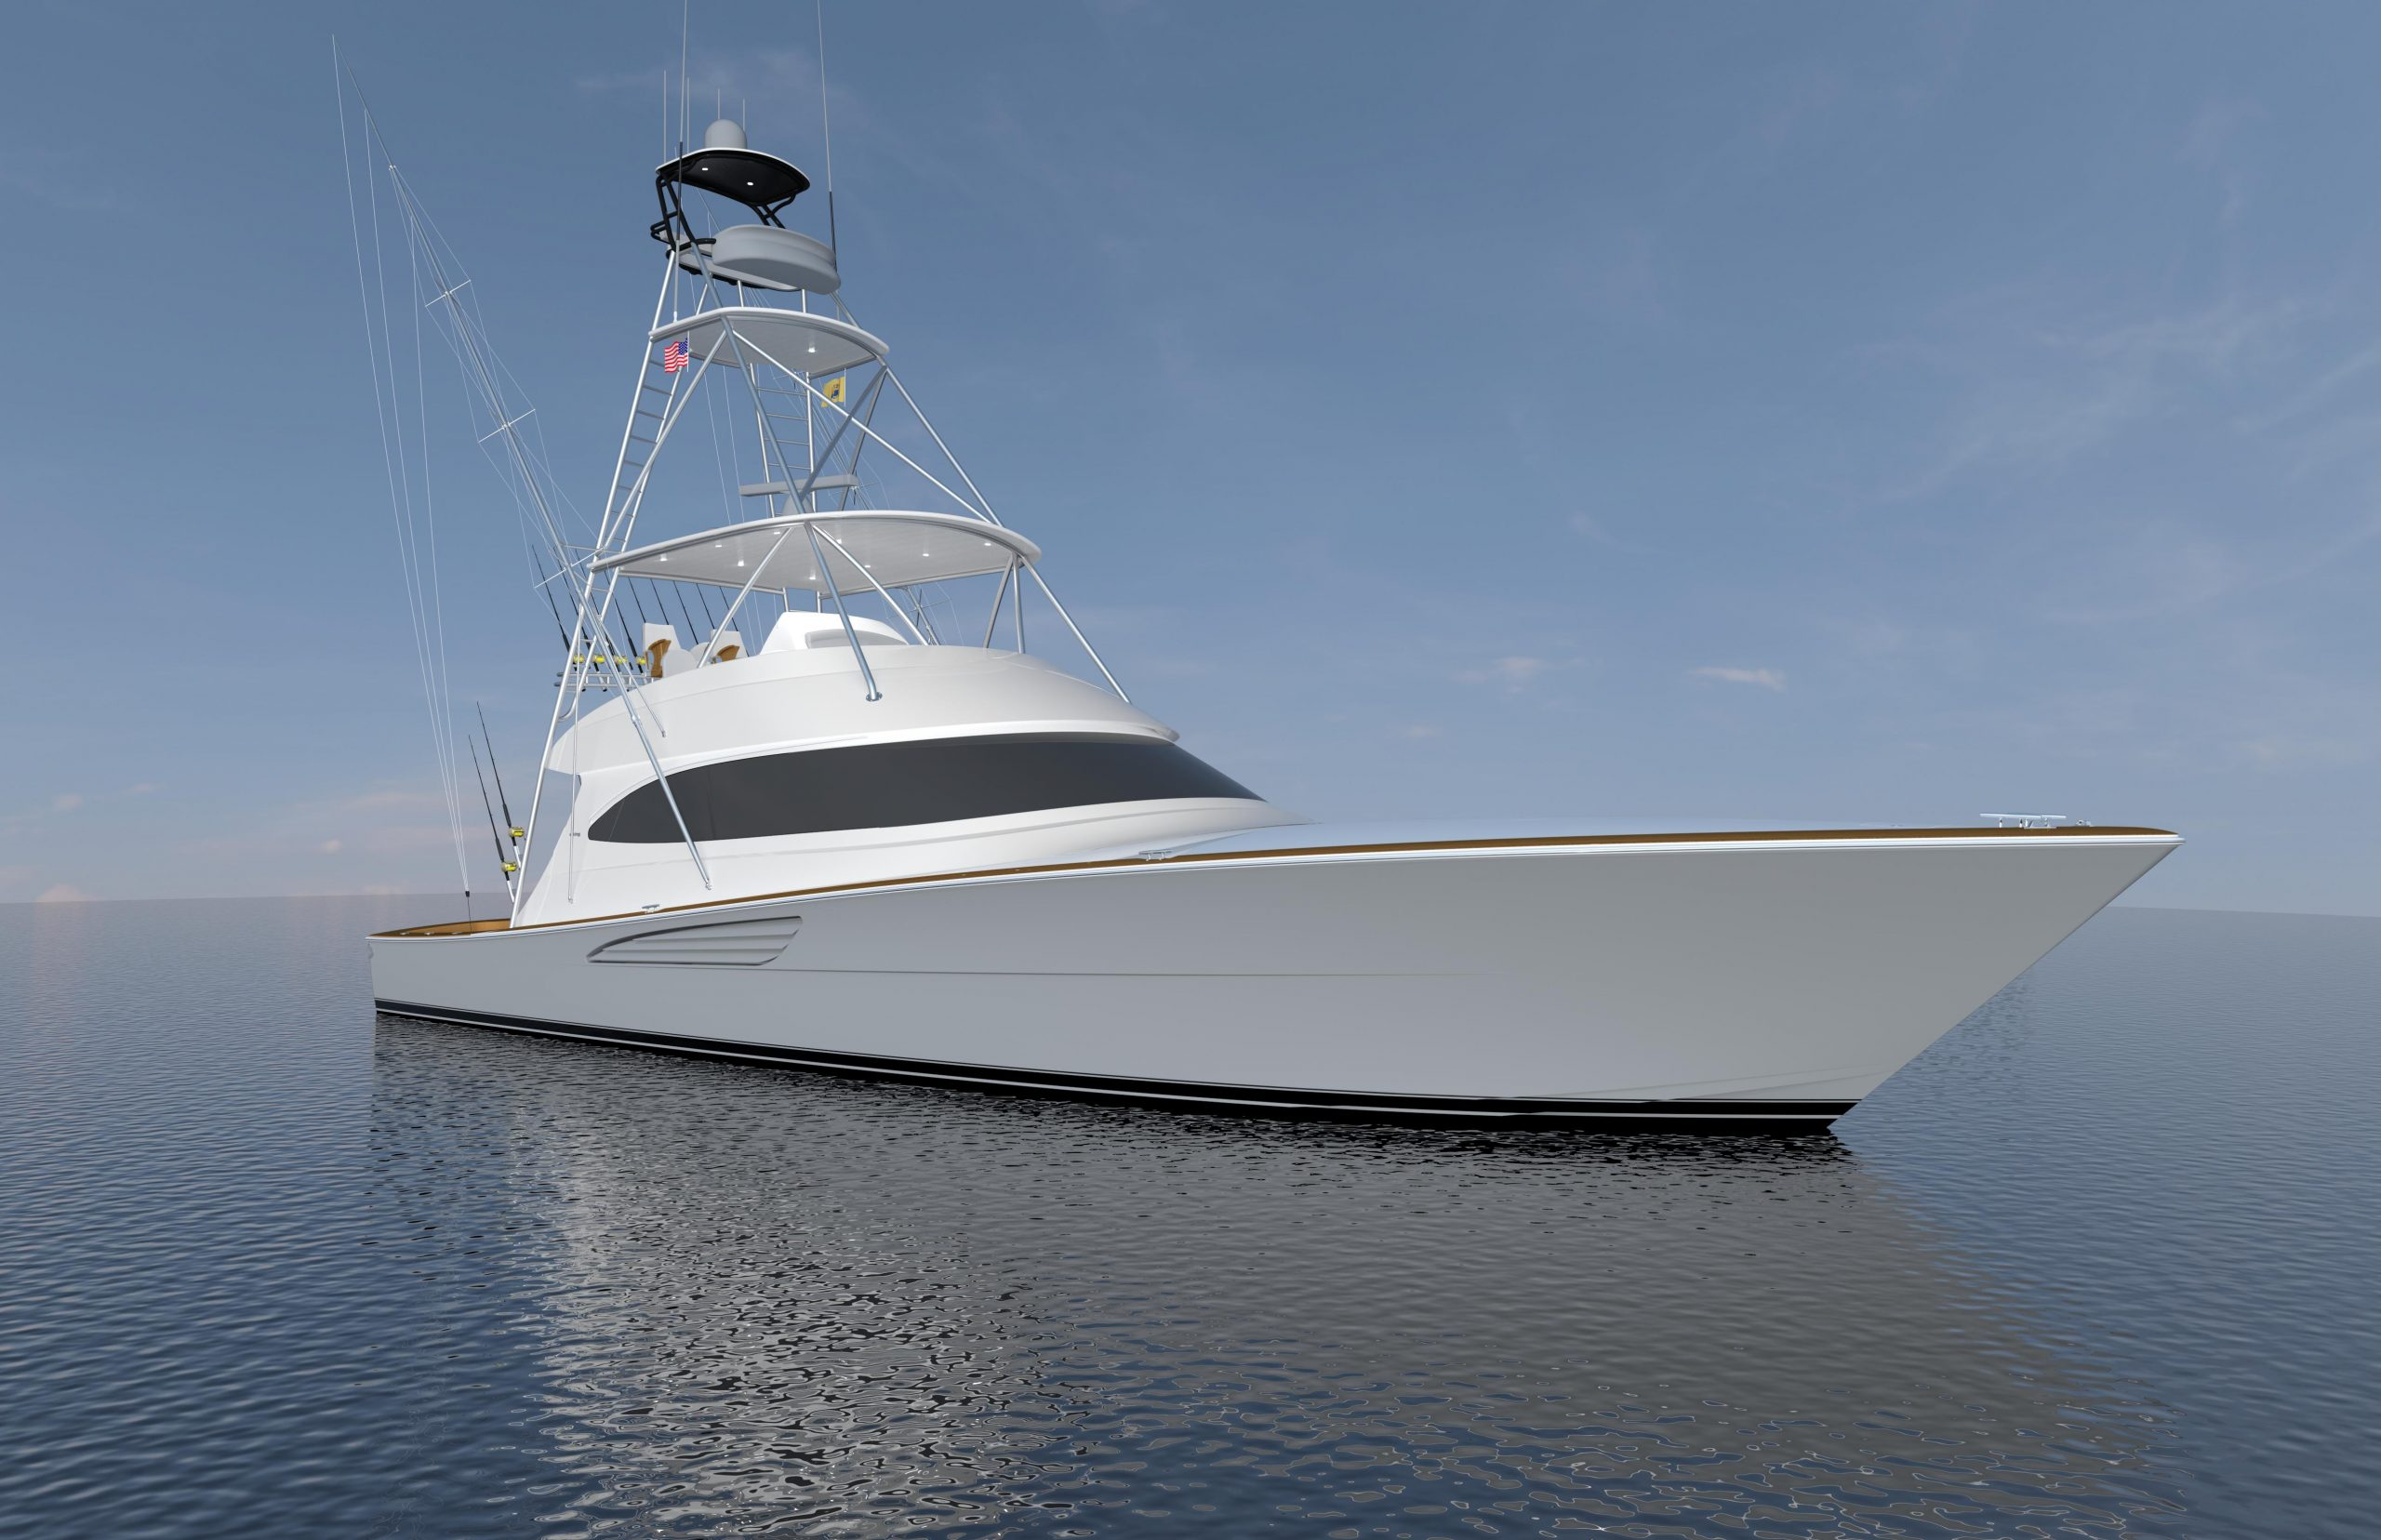 Best Offshore Fishing Boats For 2022 thumbnail